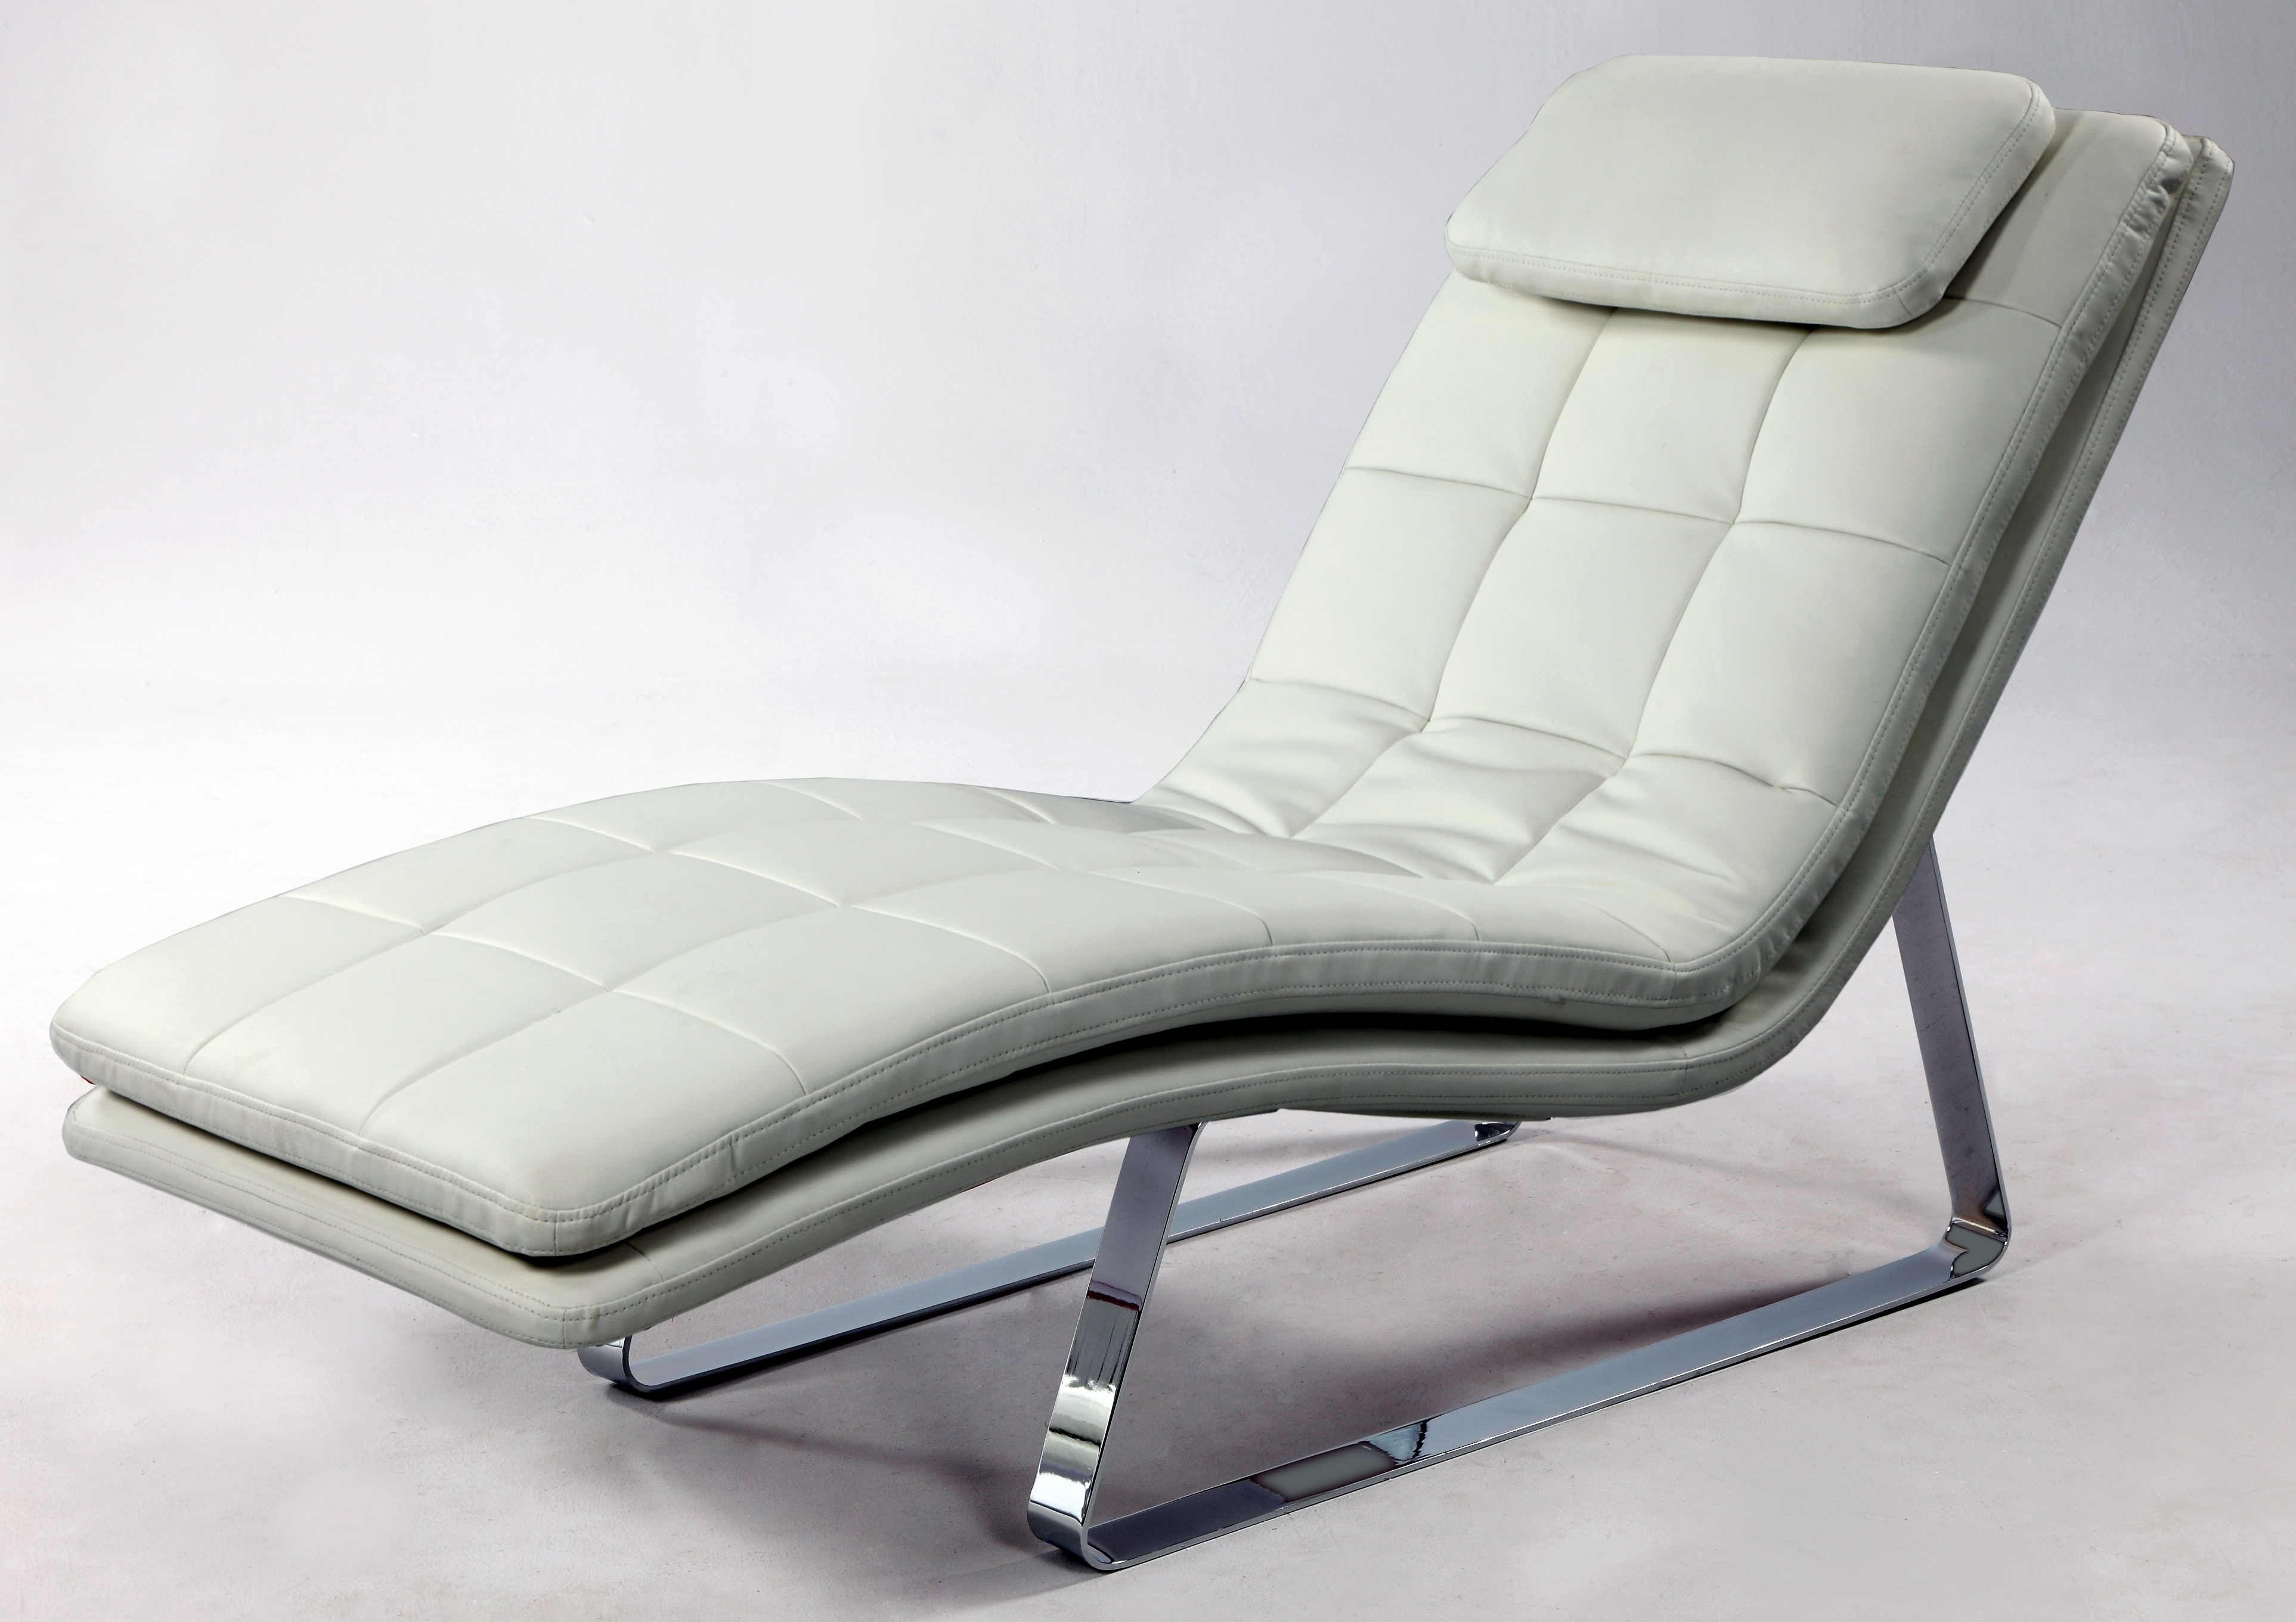 Full Bonded Leather Tufted Chaise Lounge With Chrome Legs New York Inside Favorite Tufted Leather Chaises (View 2 of 15)